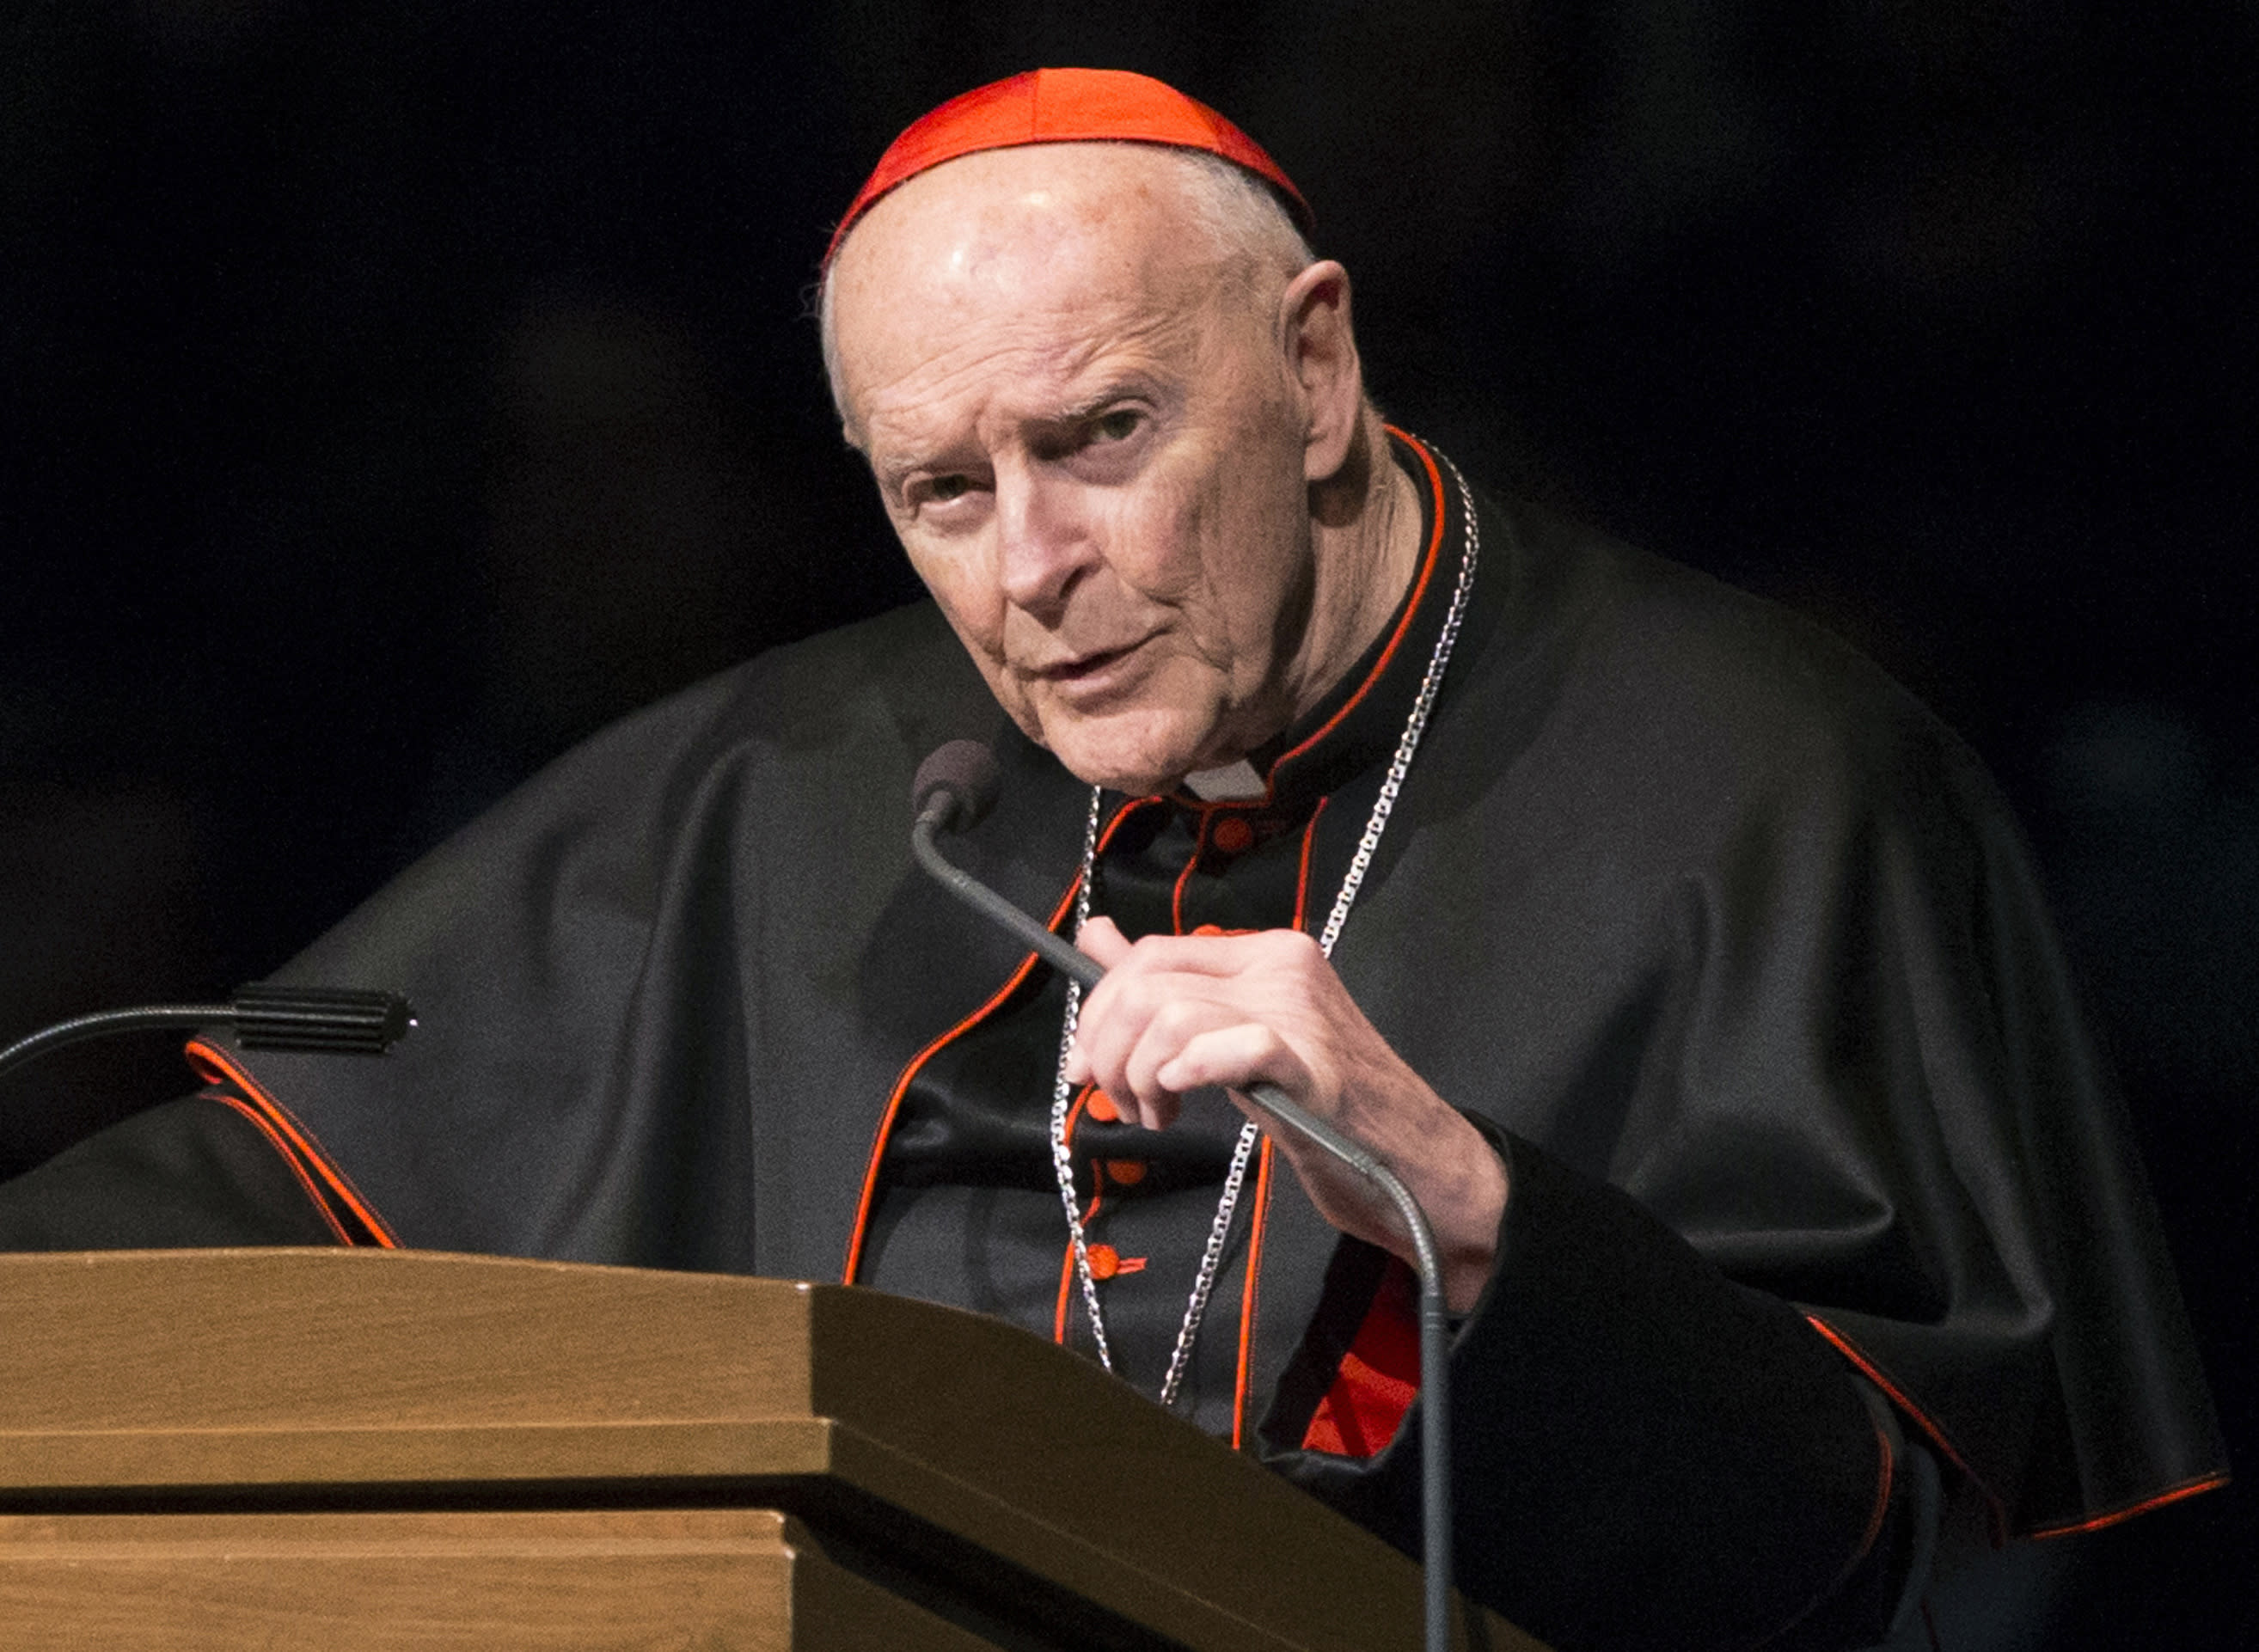 <p> FILE - In this March 4, 2015, file photo, Cardinal Theodore McCarrick speaks during a memorial service in South Bend, Ind. A 2006 letter from Cardinal Leonardo Sandri, a top Vatican official confirms that the Holy See received information in 2000 about the sexual misconduct of now-resigned U.S. Cardinal Theodore McCarrick, lending credibility to bombshell accusations of cover-up at the highest echelons of the Catholic Church (Robert Franklin/South Bend Tribune via AP, Pool, File) </p>